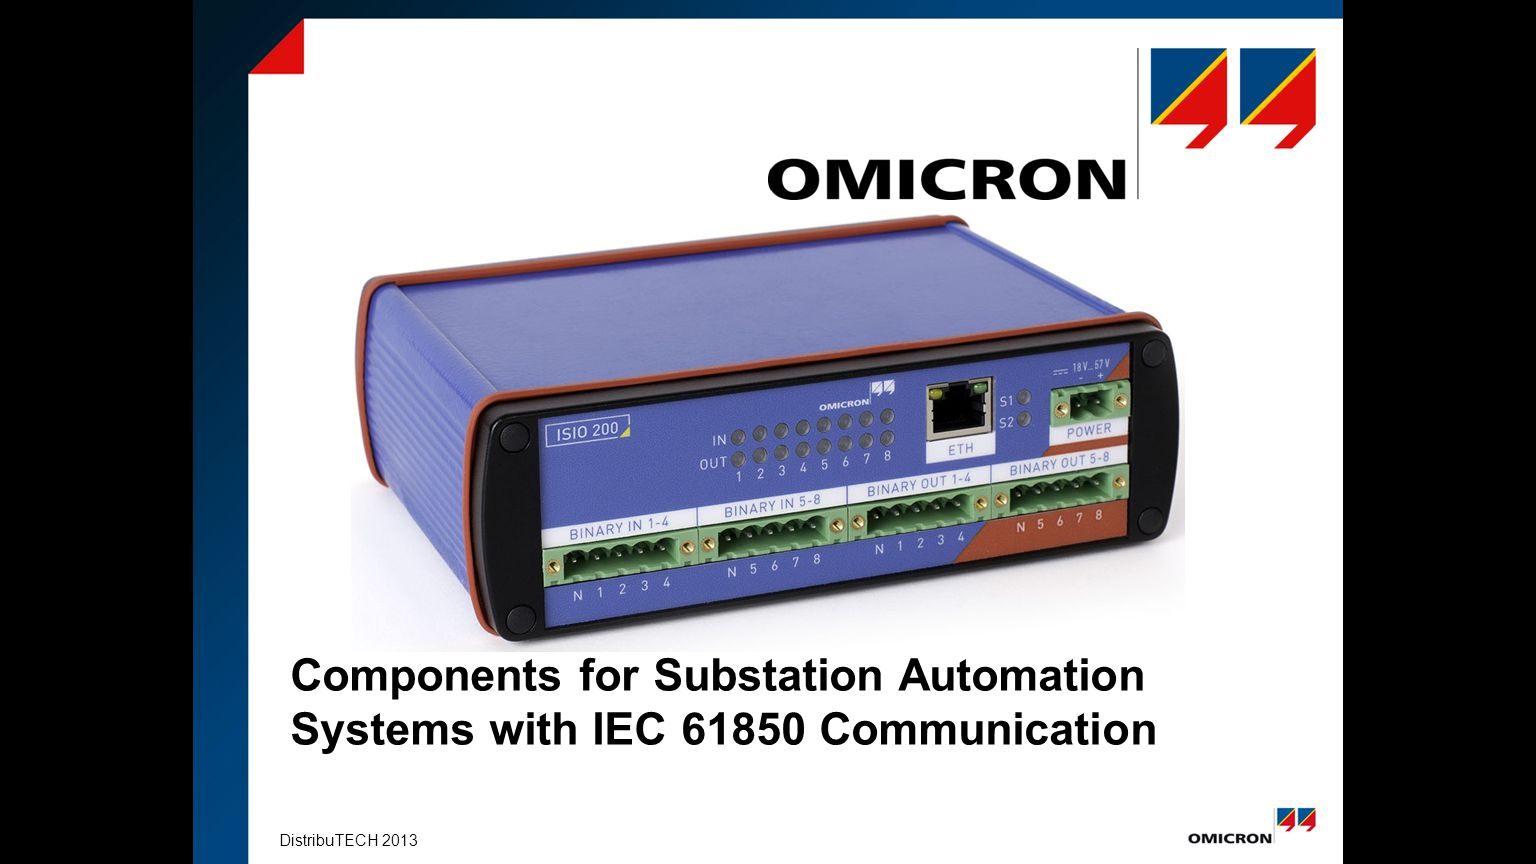 DistribuTECH 2013 Components for Substation Automation Systems with IEC 61850 Communication